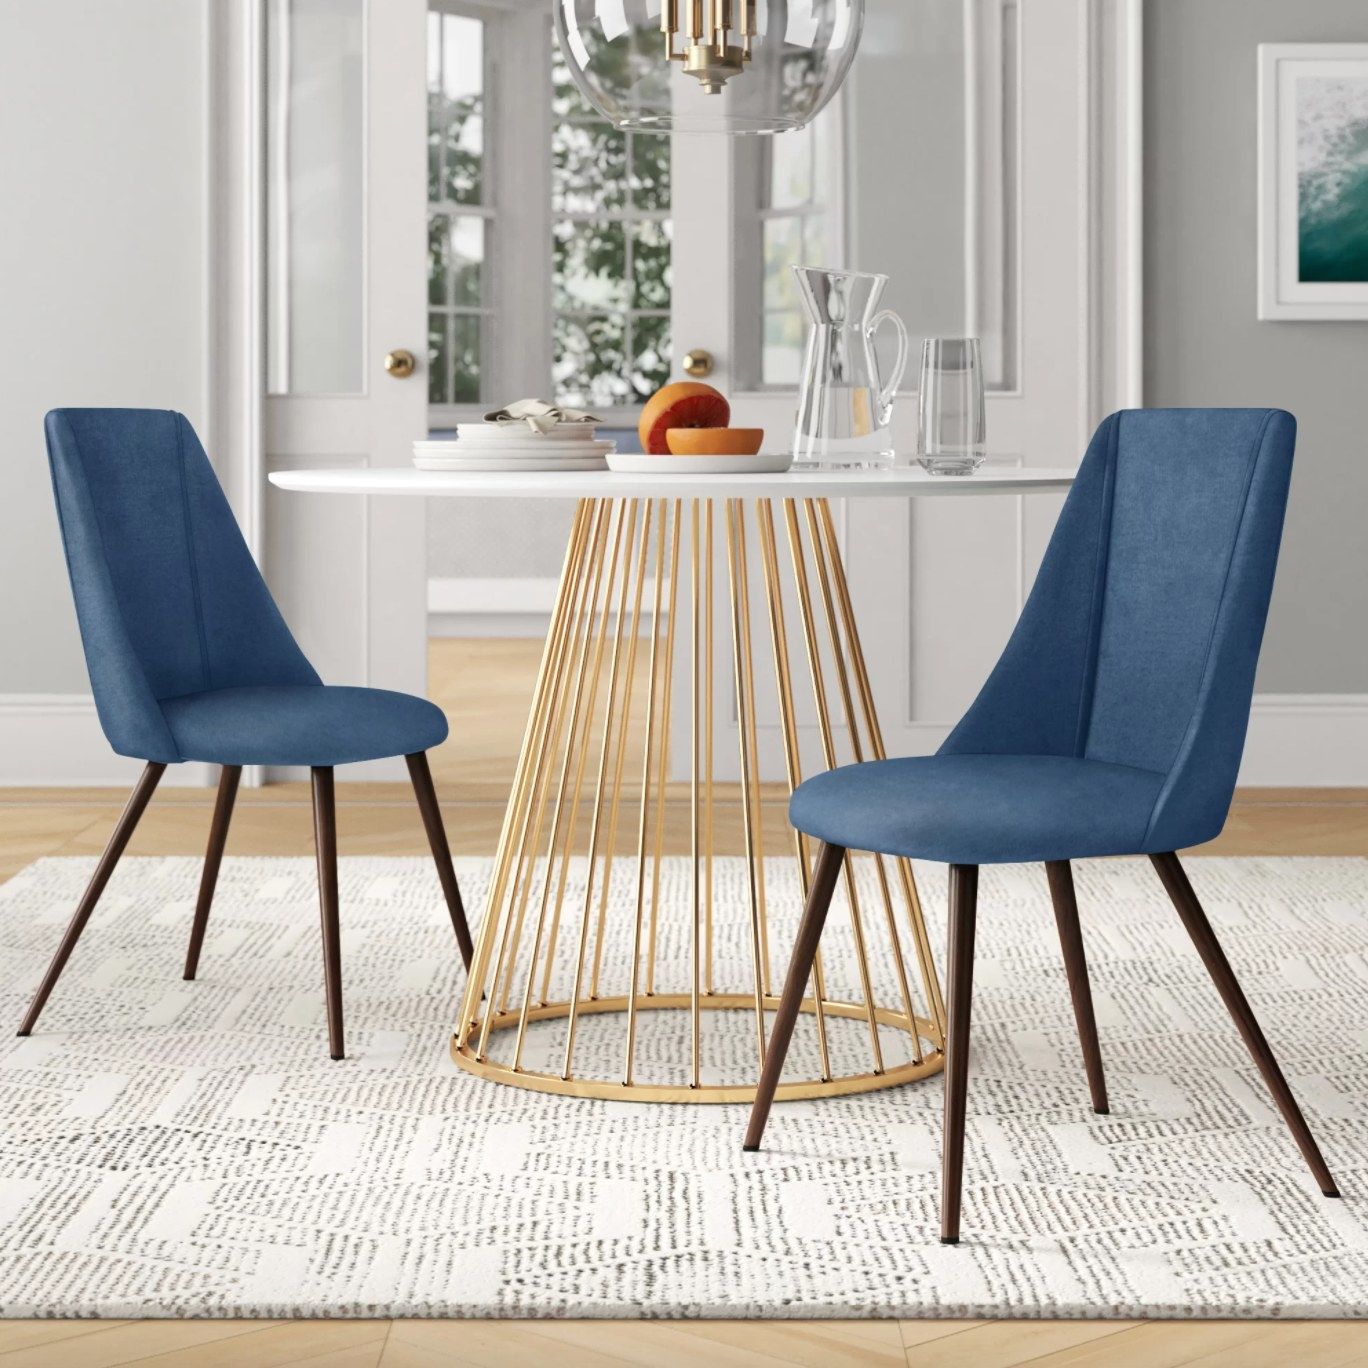 the set of two velvet upholstered chairs in blue with brown wood legs